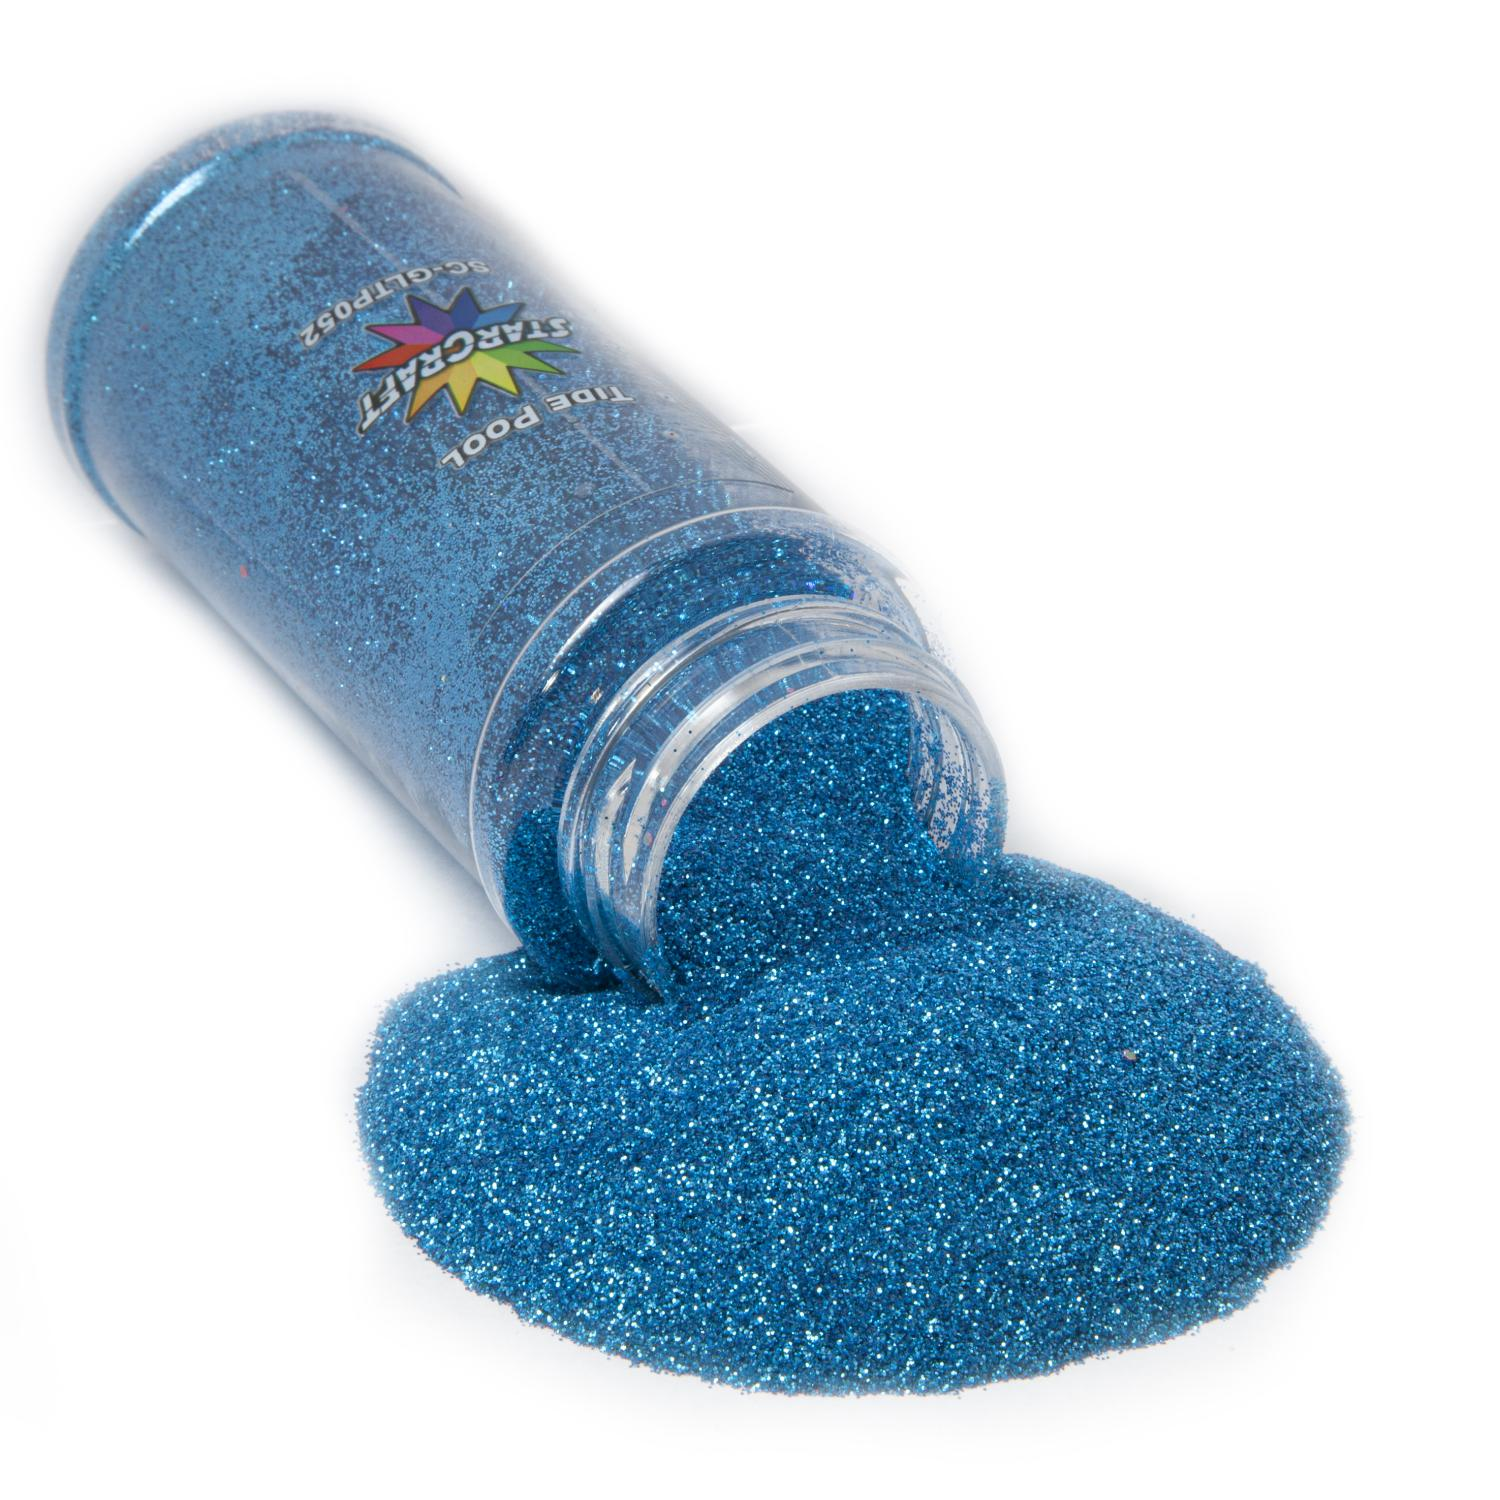 starcraft-glitter-tide-pool-metallic_1500